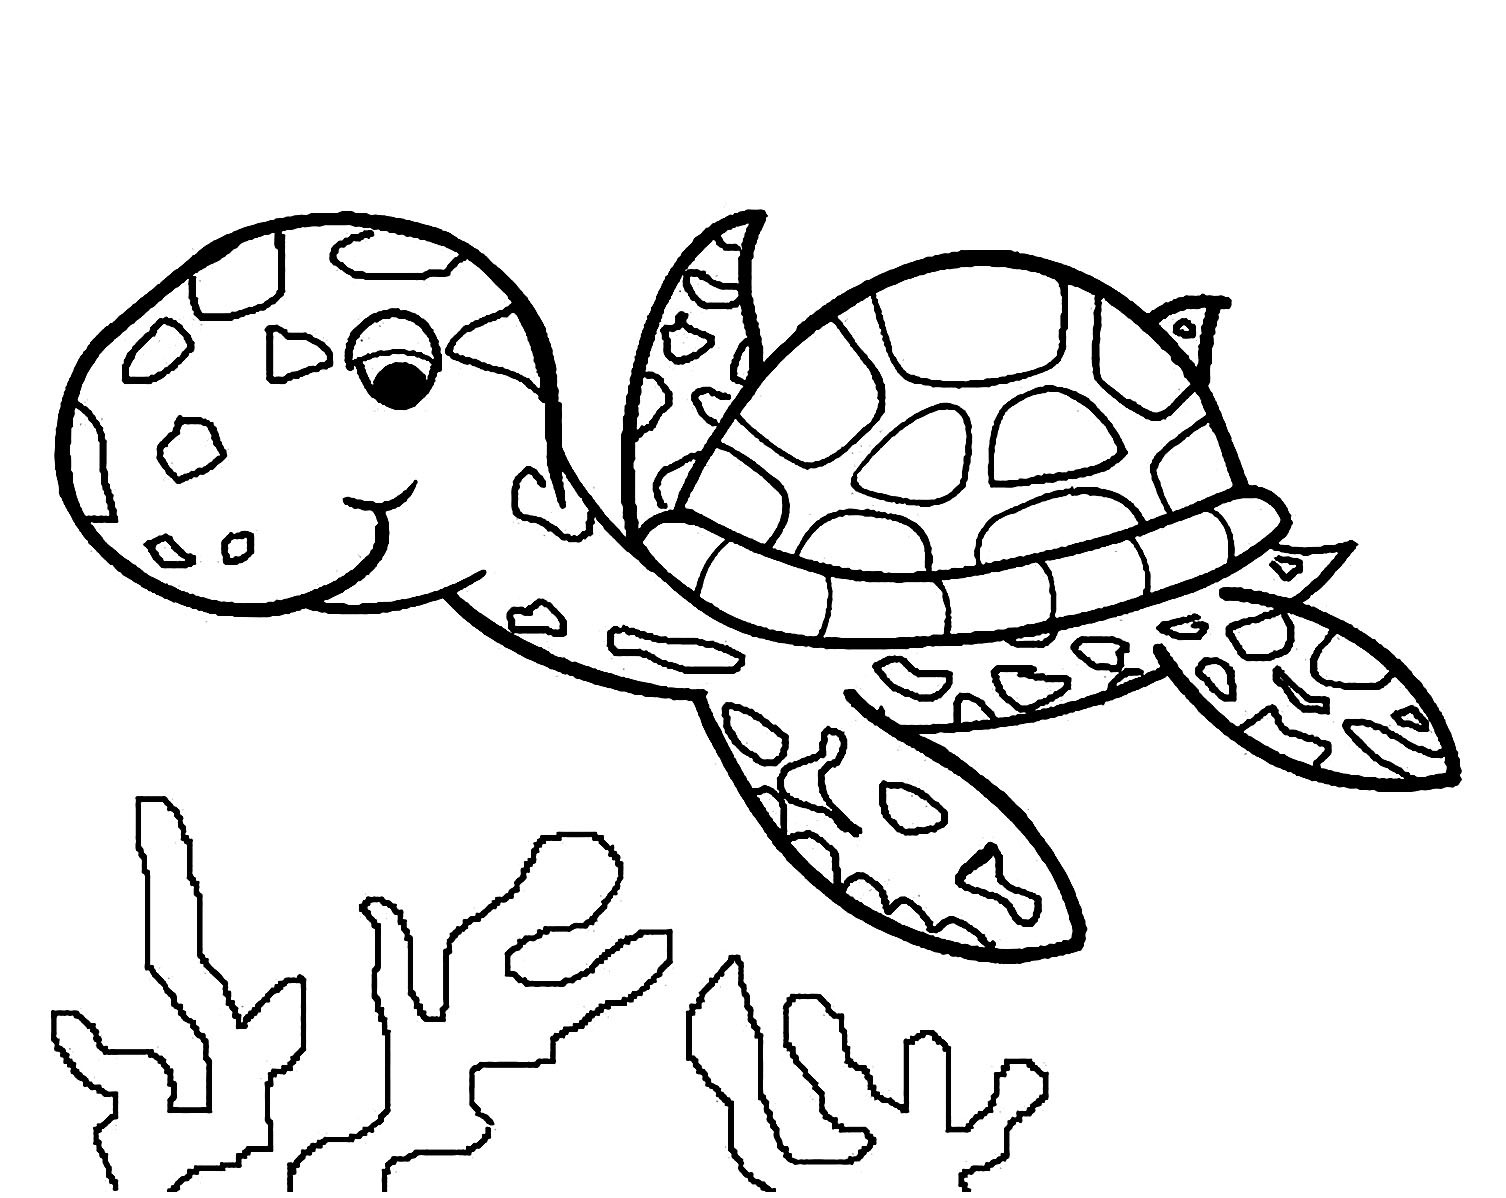 Children Coloring Page  Turtles to print Turtles Kids Coloring Pages